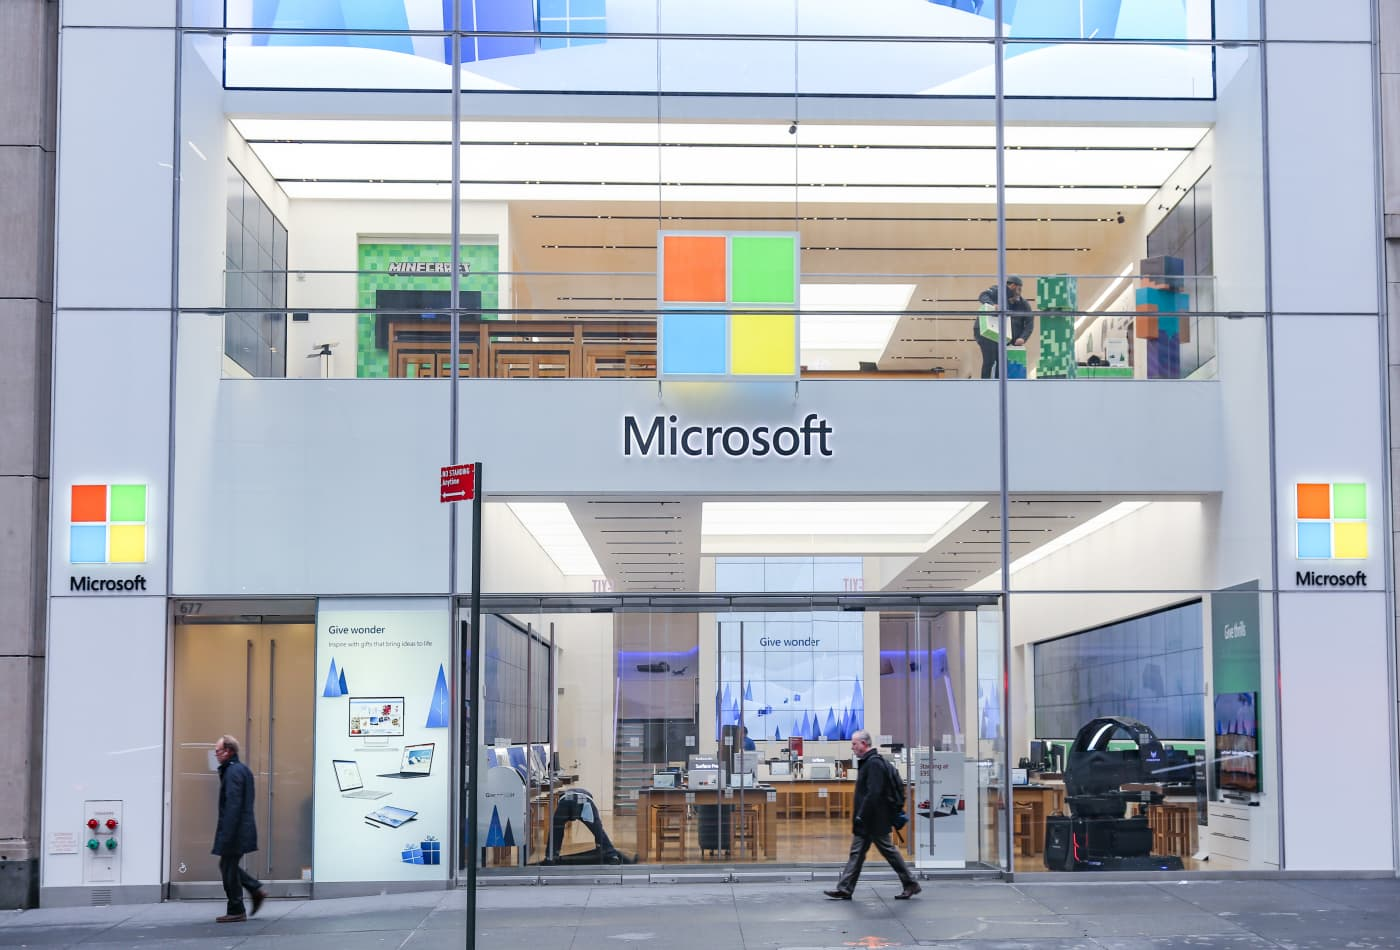 Microsoft announces it will permanently close all its retail stores